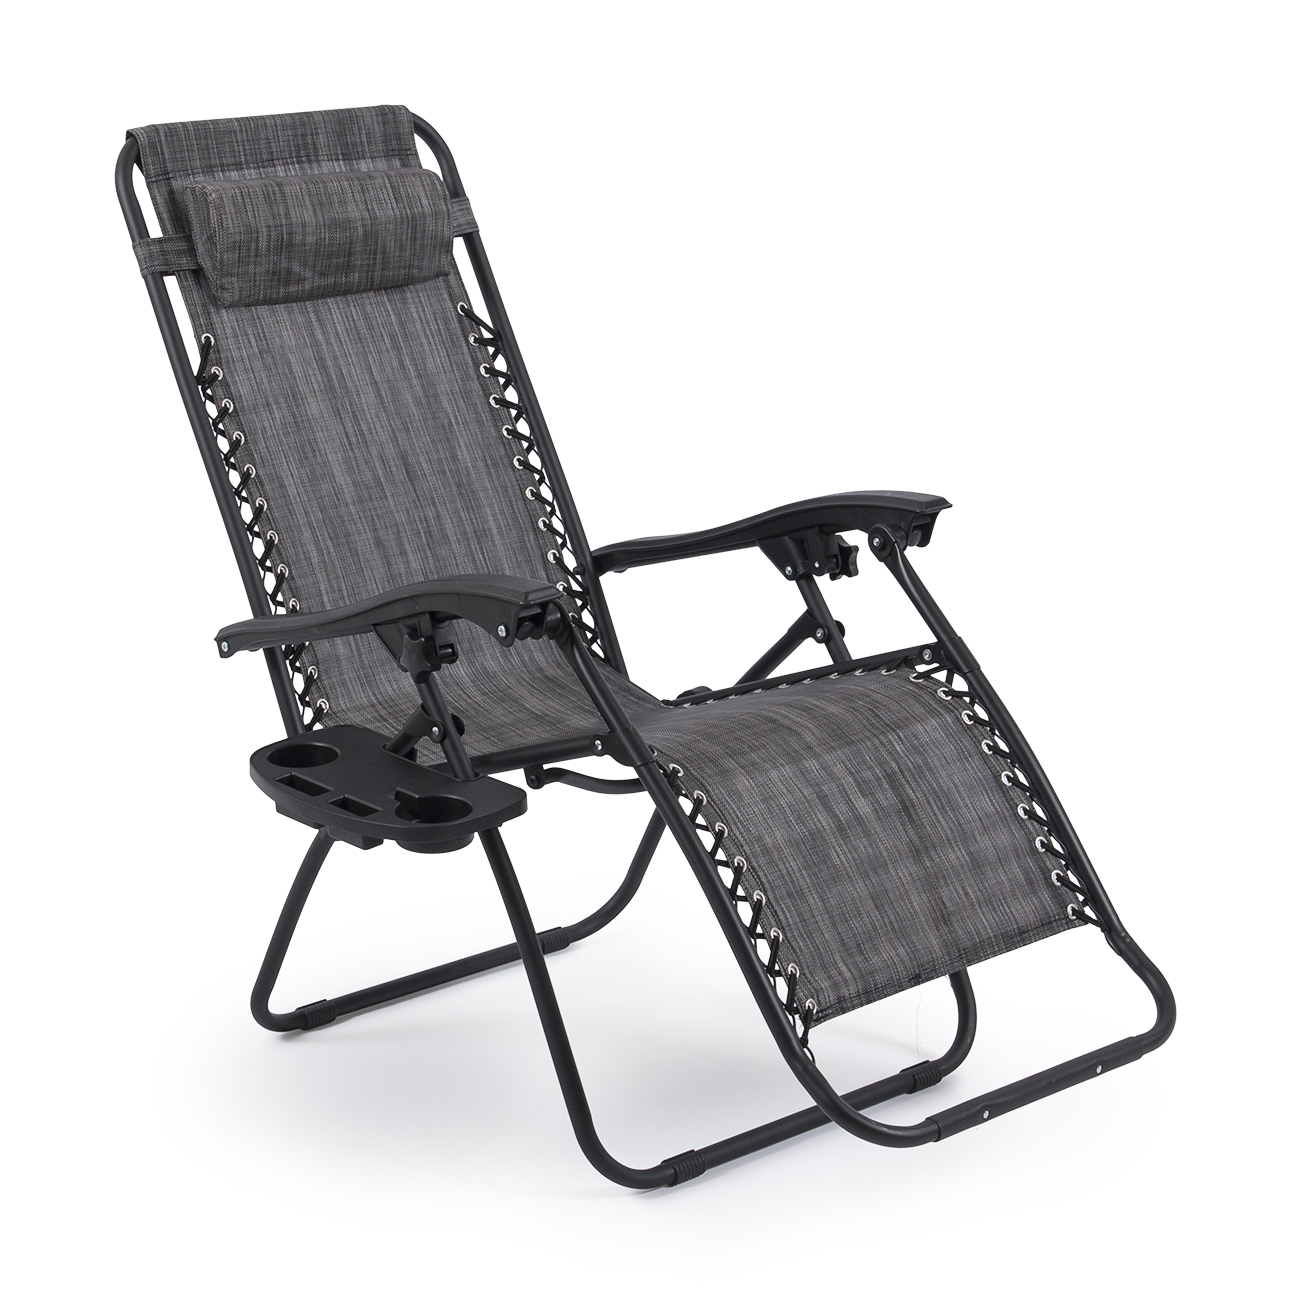 2 Folding Zero Gravity Reclining Lounge ChairsUtility